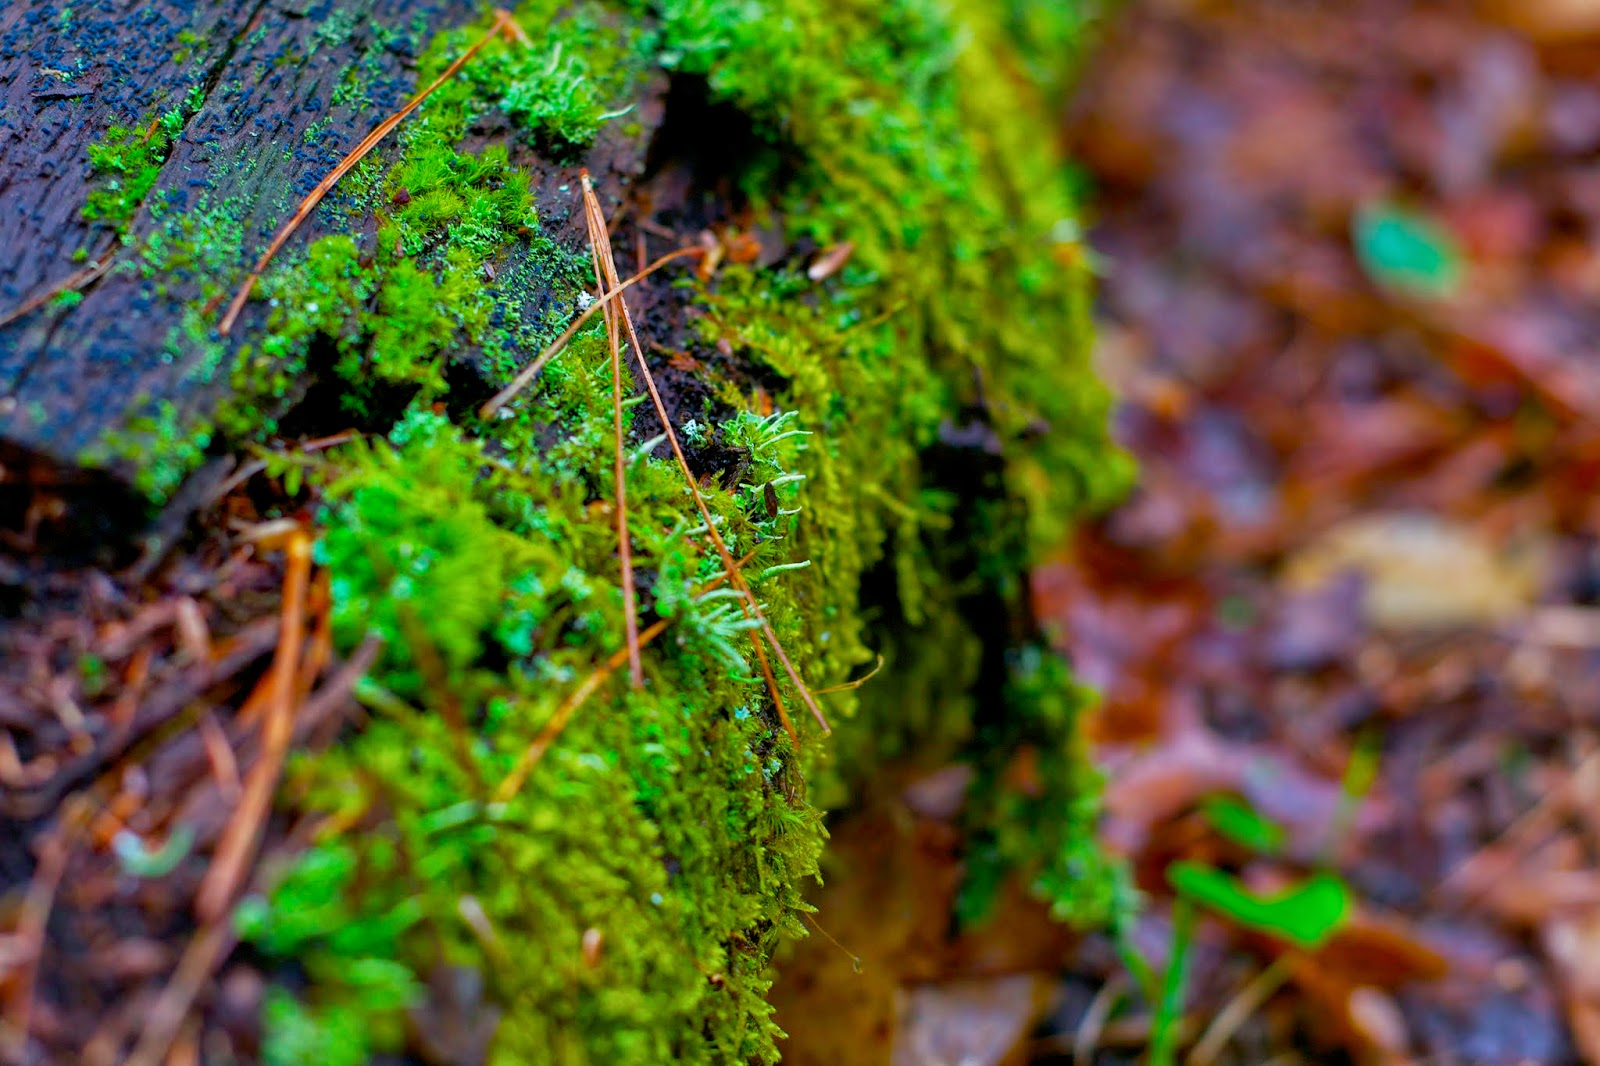 Moss and lichen taking over a fallen log.